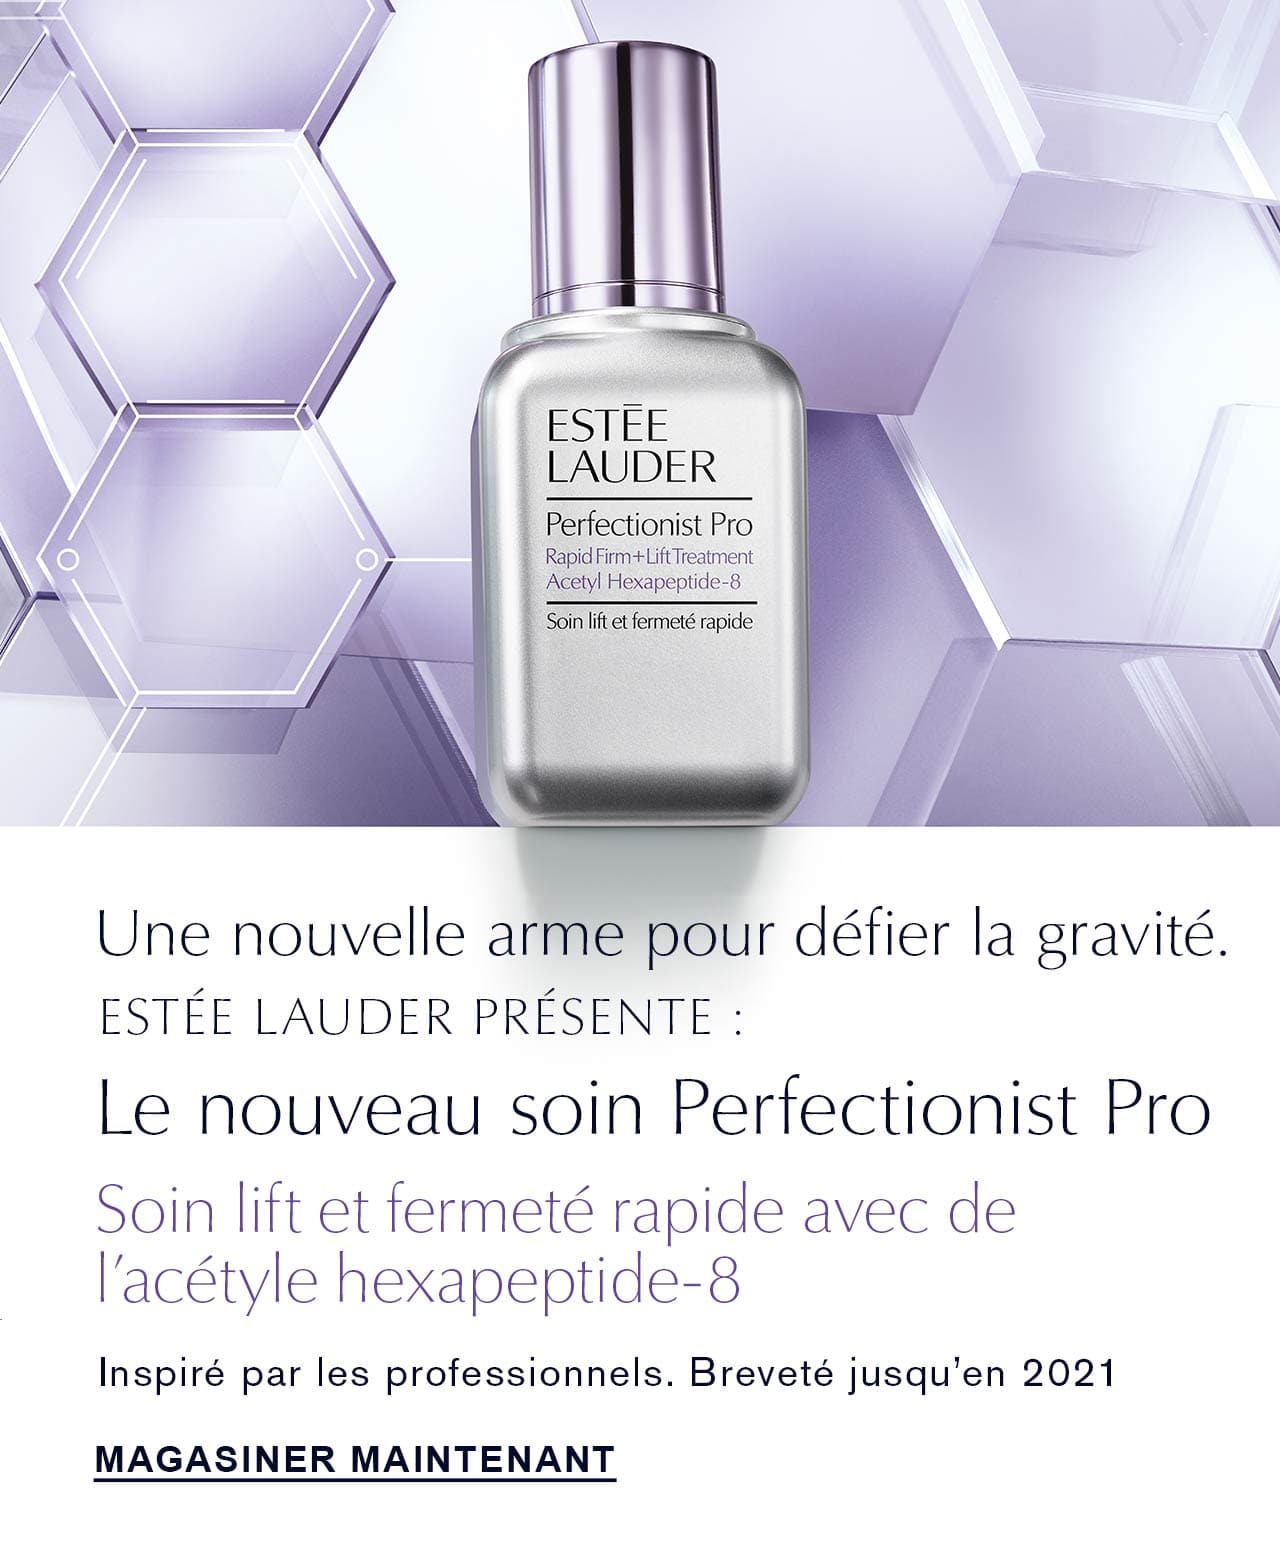 Estee Lauder invents new perfectionist pro rapid firm + lift treatment with acetyl hexapeptide-8